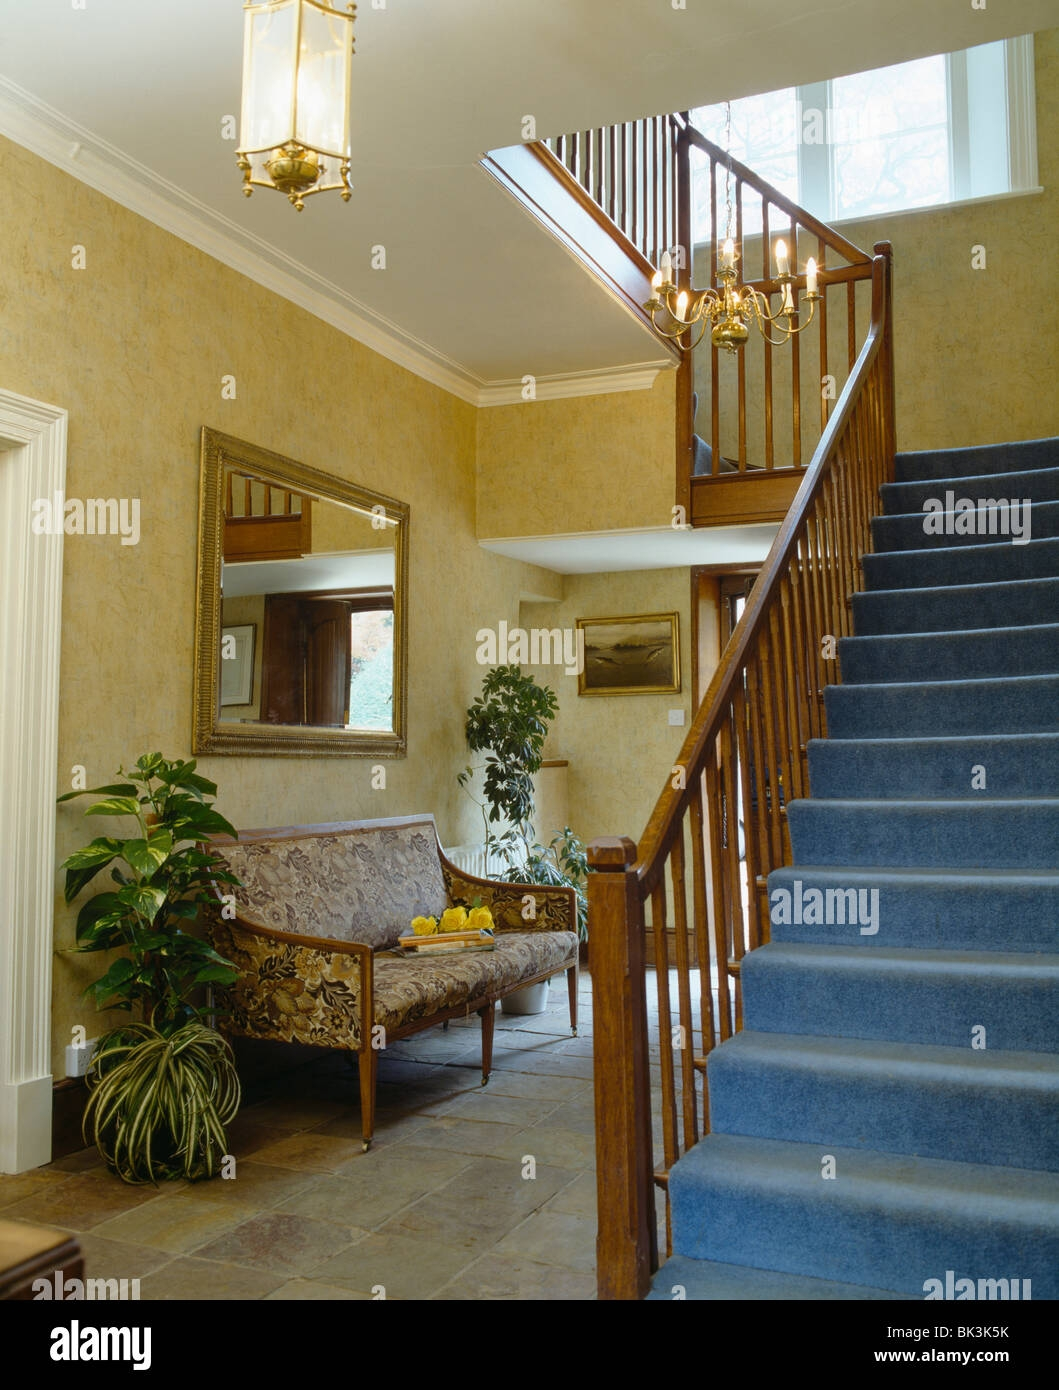 Blue Carpet On Staircase In Traditional Hall With Cream Wallpaper   Blue Carpet On Stairs   Wooden   Grey Stair White Wall   Antelope   Geometric   Gray